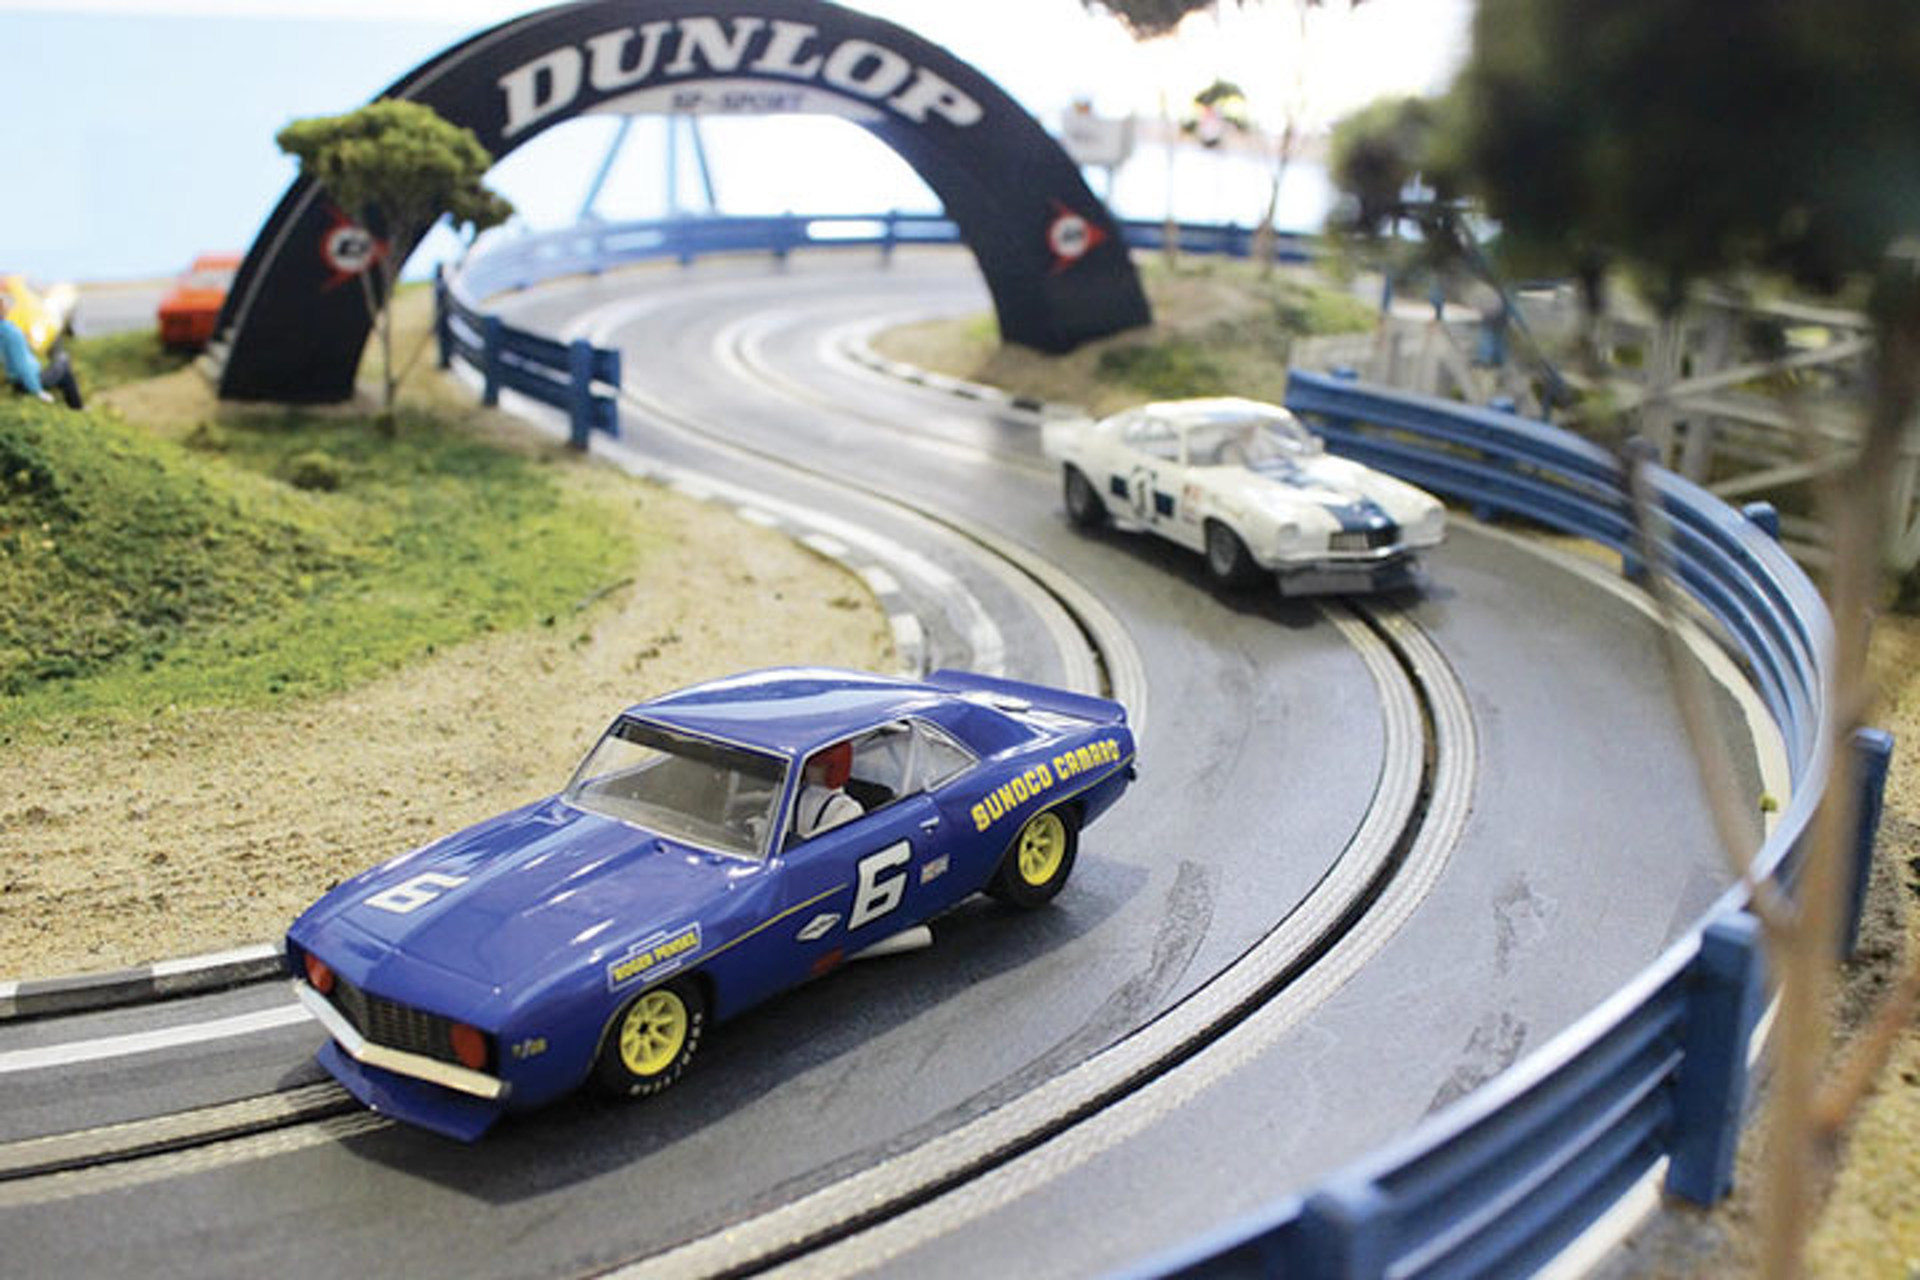 Perfect for the Mancave: Life-size Camaro and Porsche 917 Slot-car Tracks